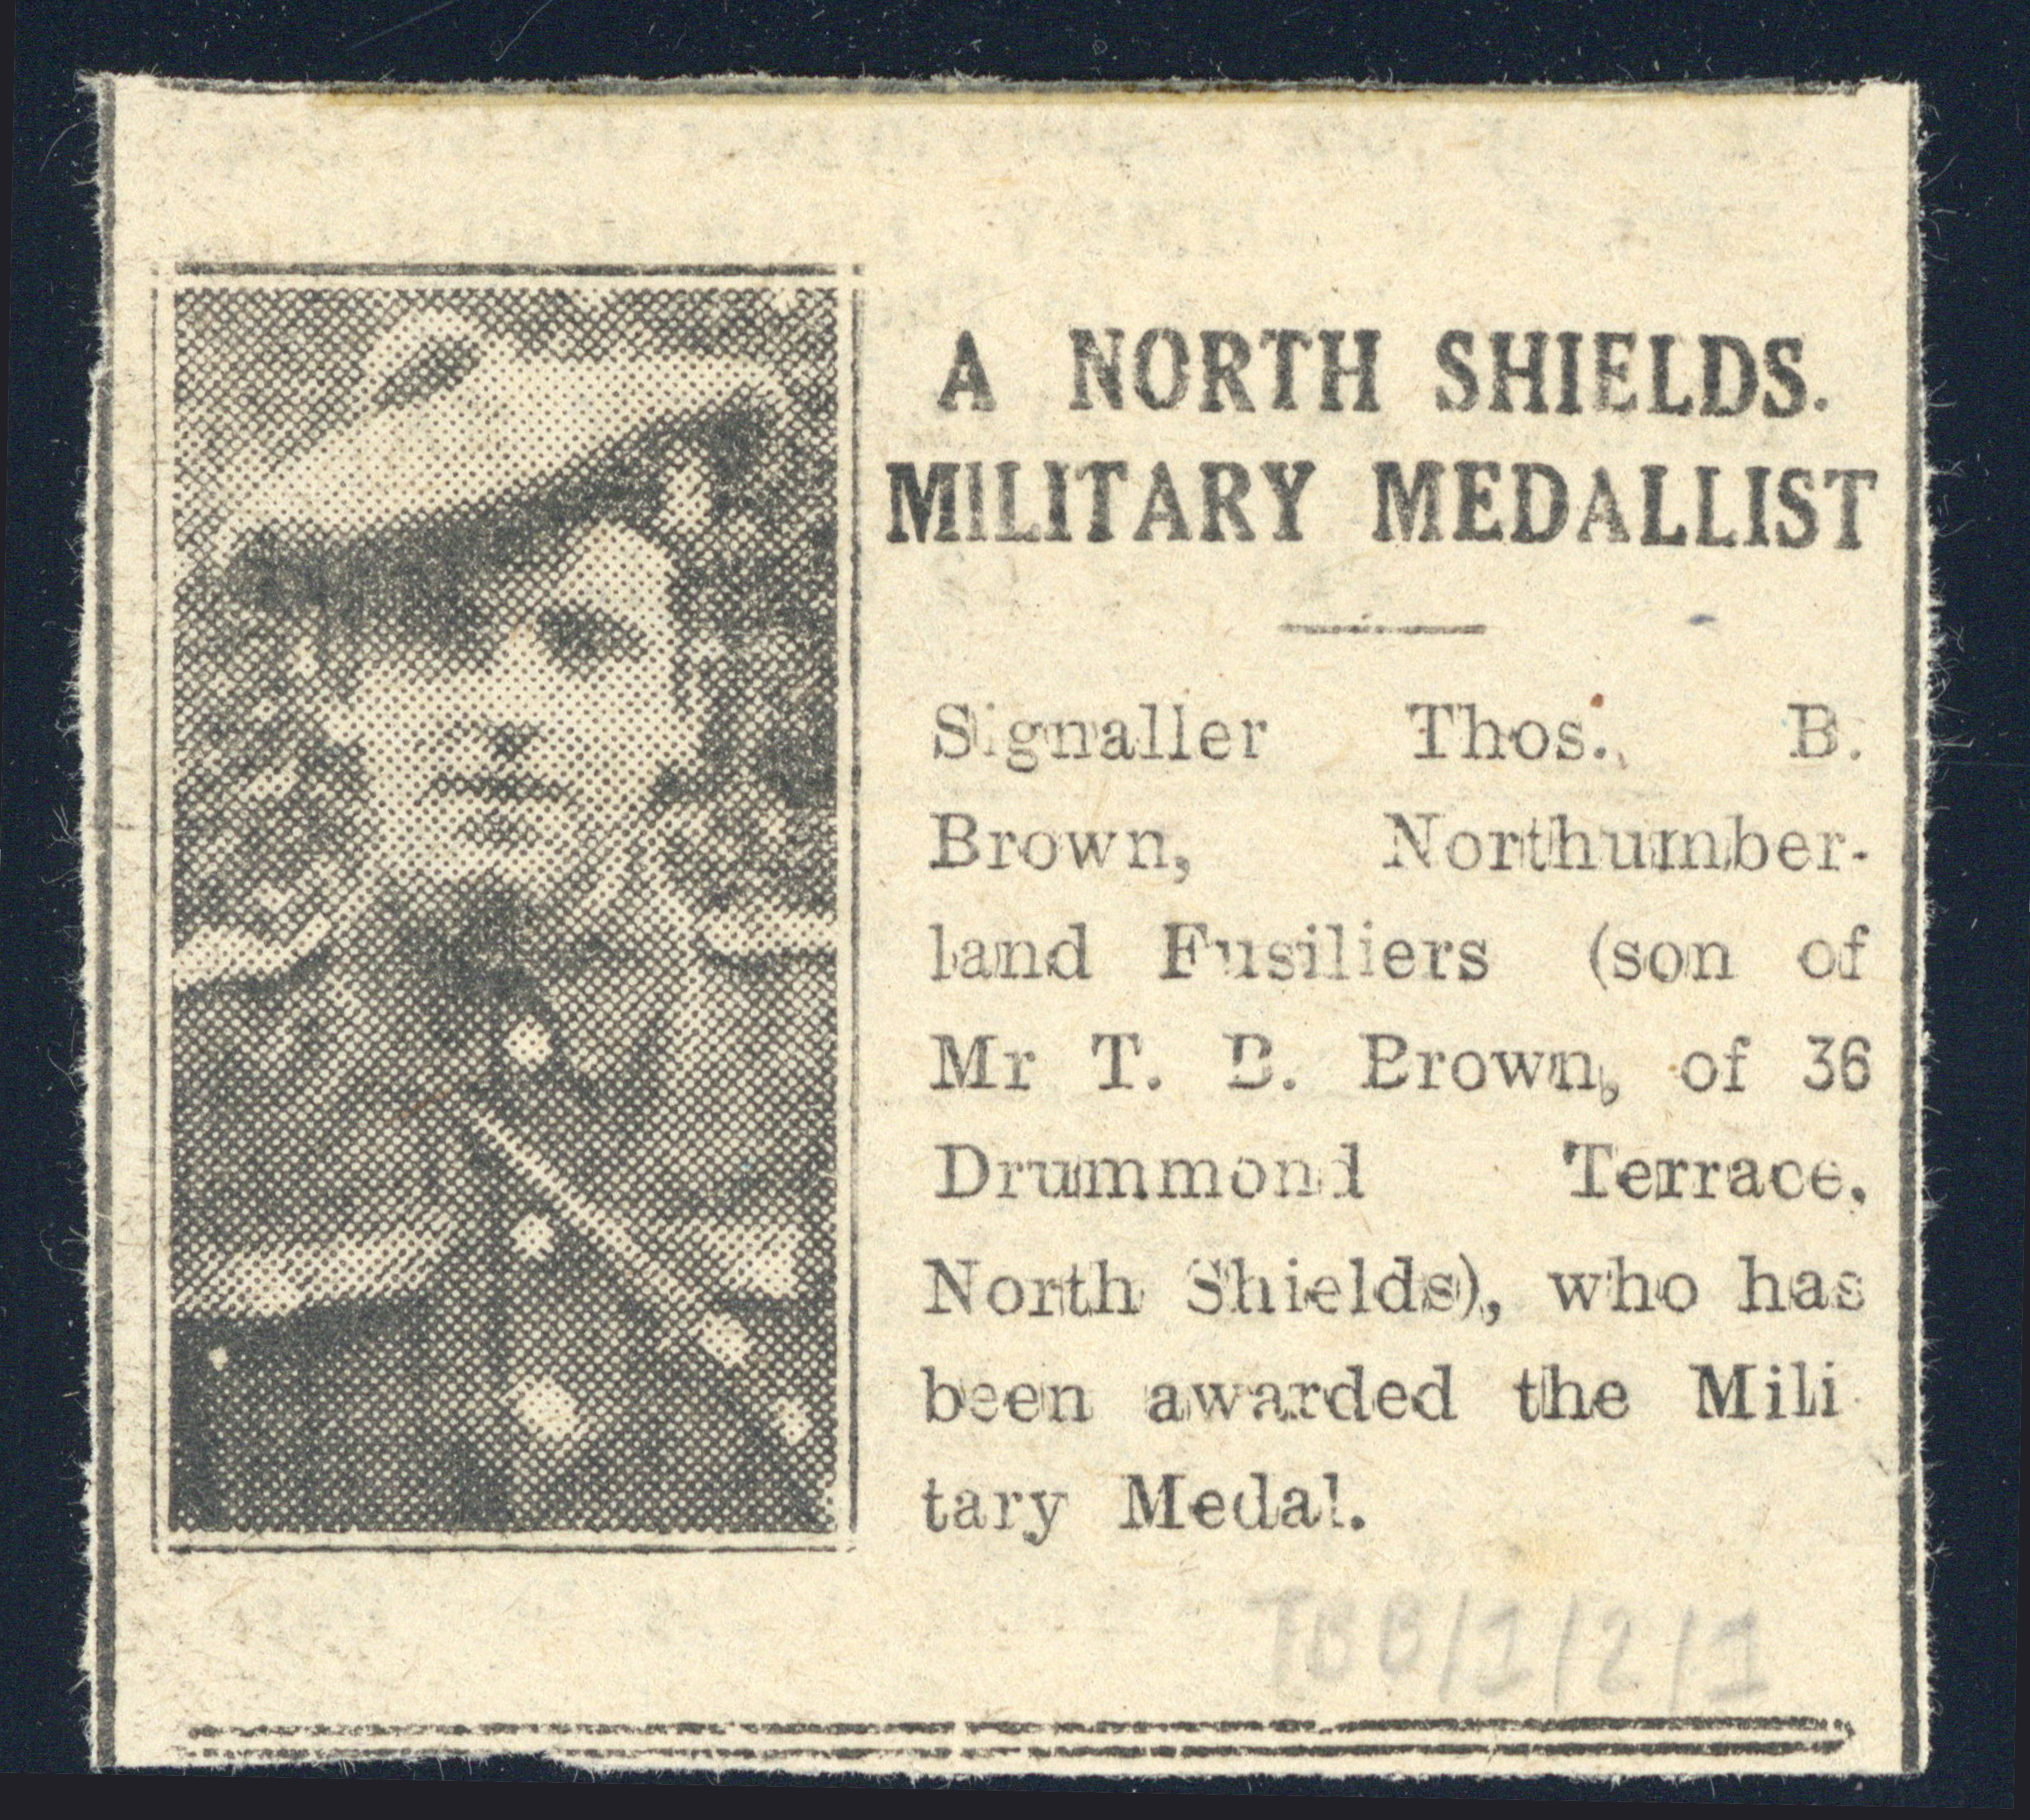 Newspaper cutting of Thomas Baker Brown being awarded a Military Medal